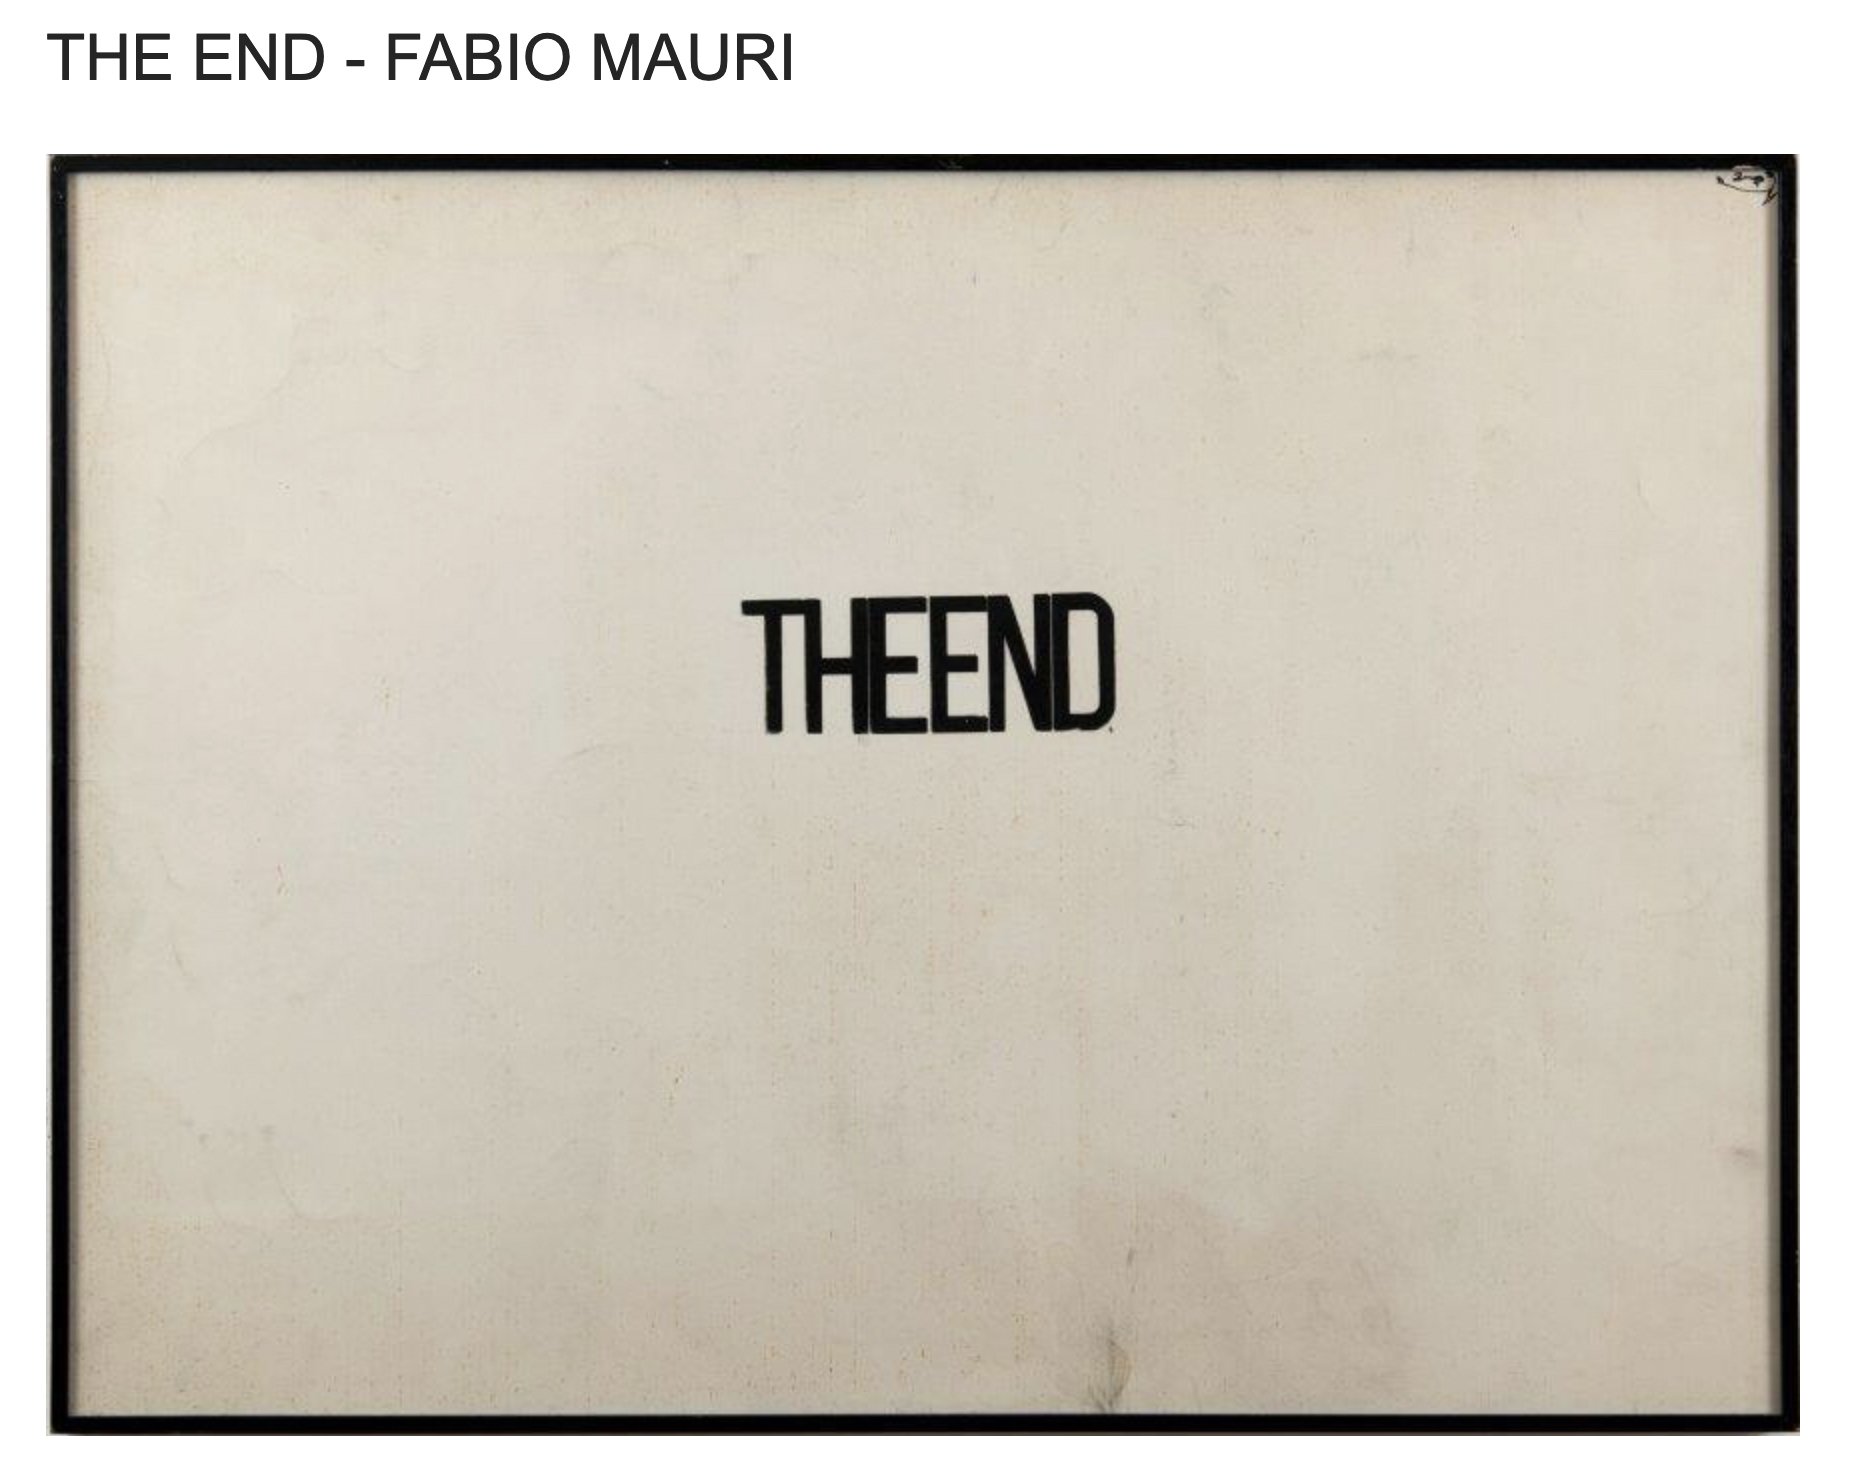 The End - Fabio Mauri